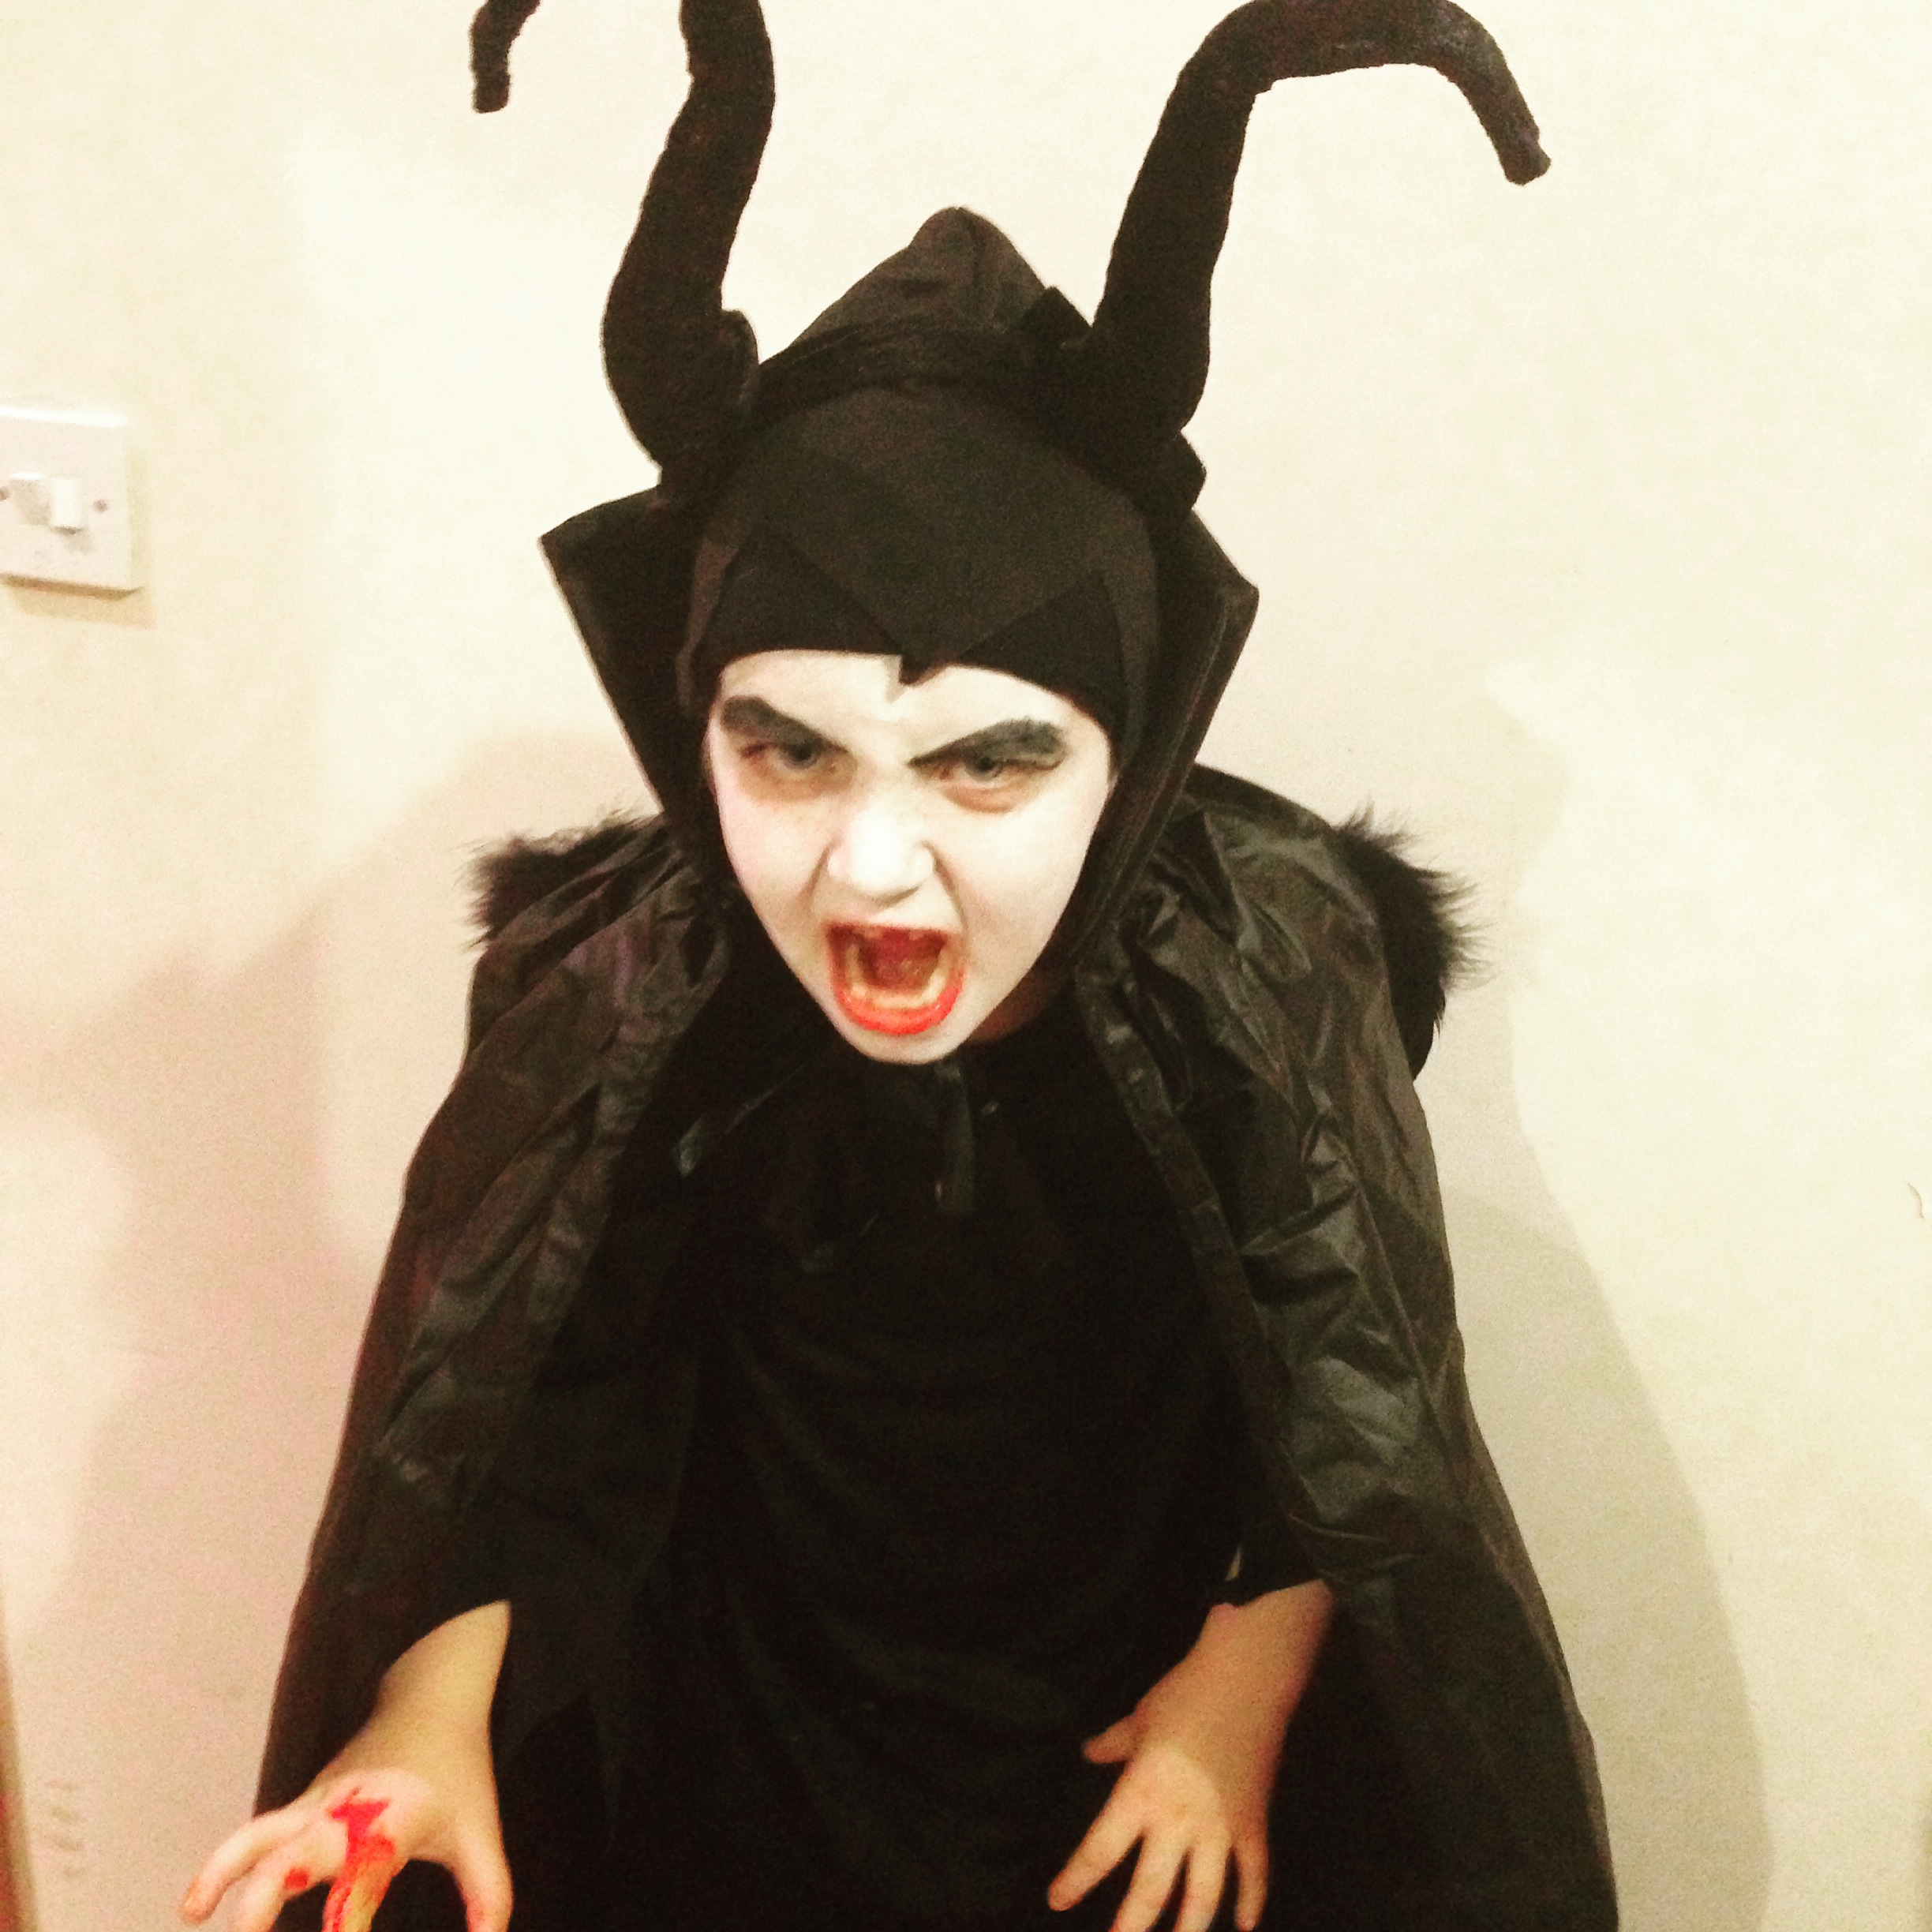 Hailey as Maleficient